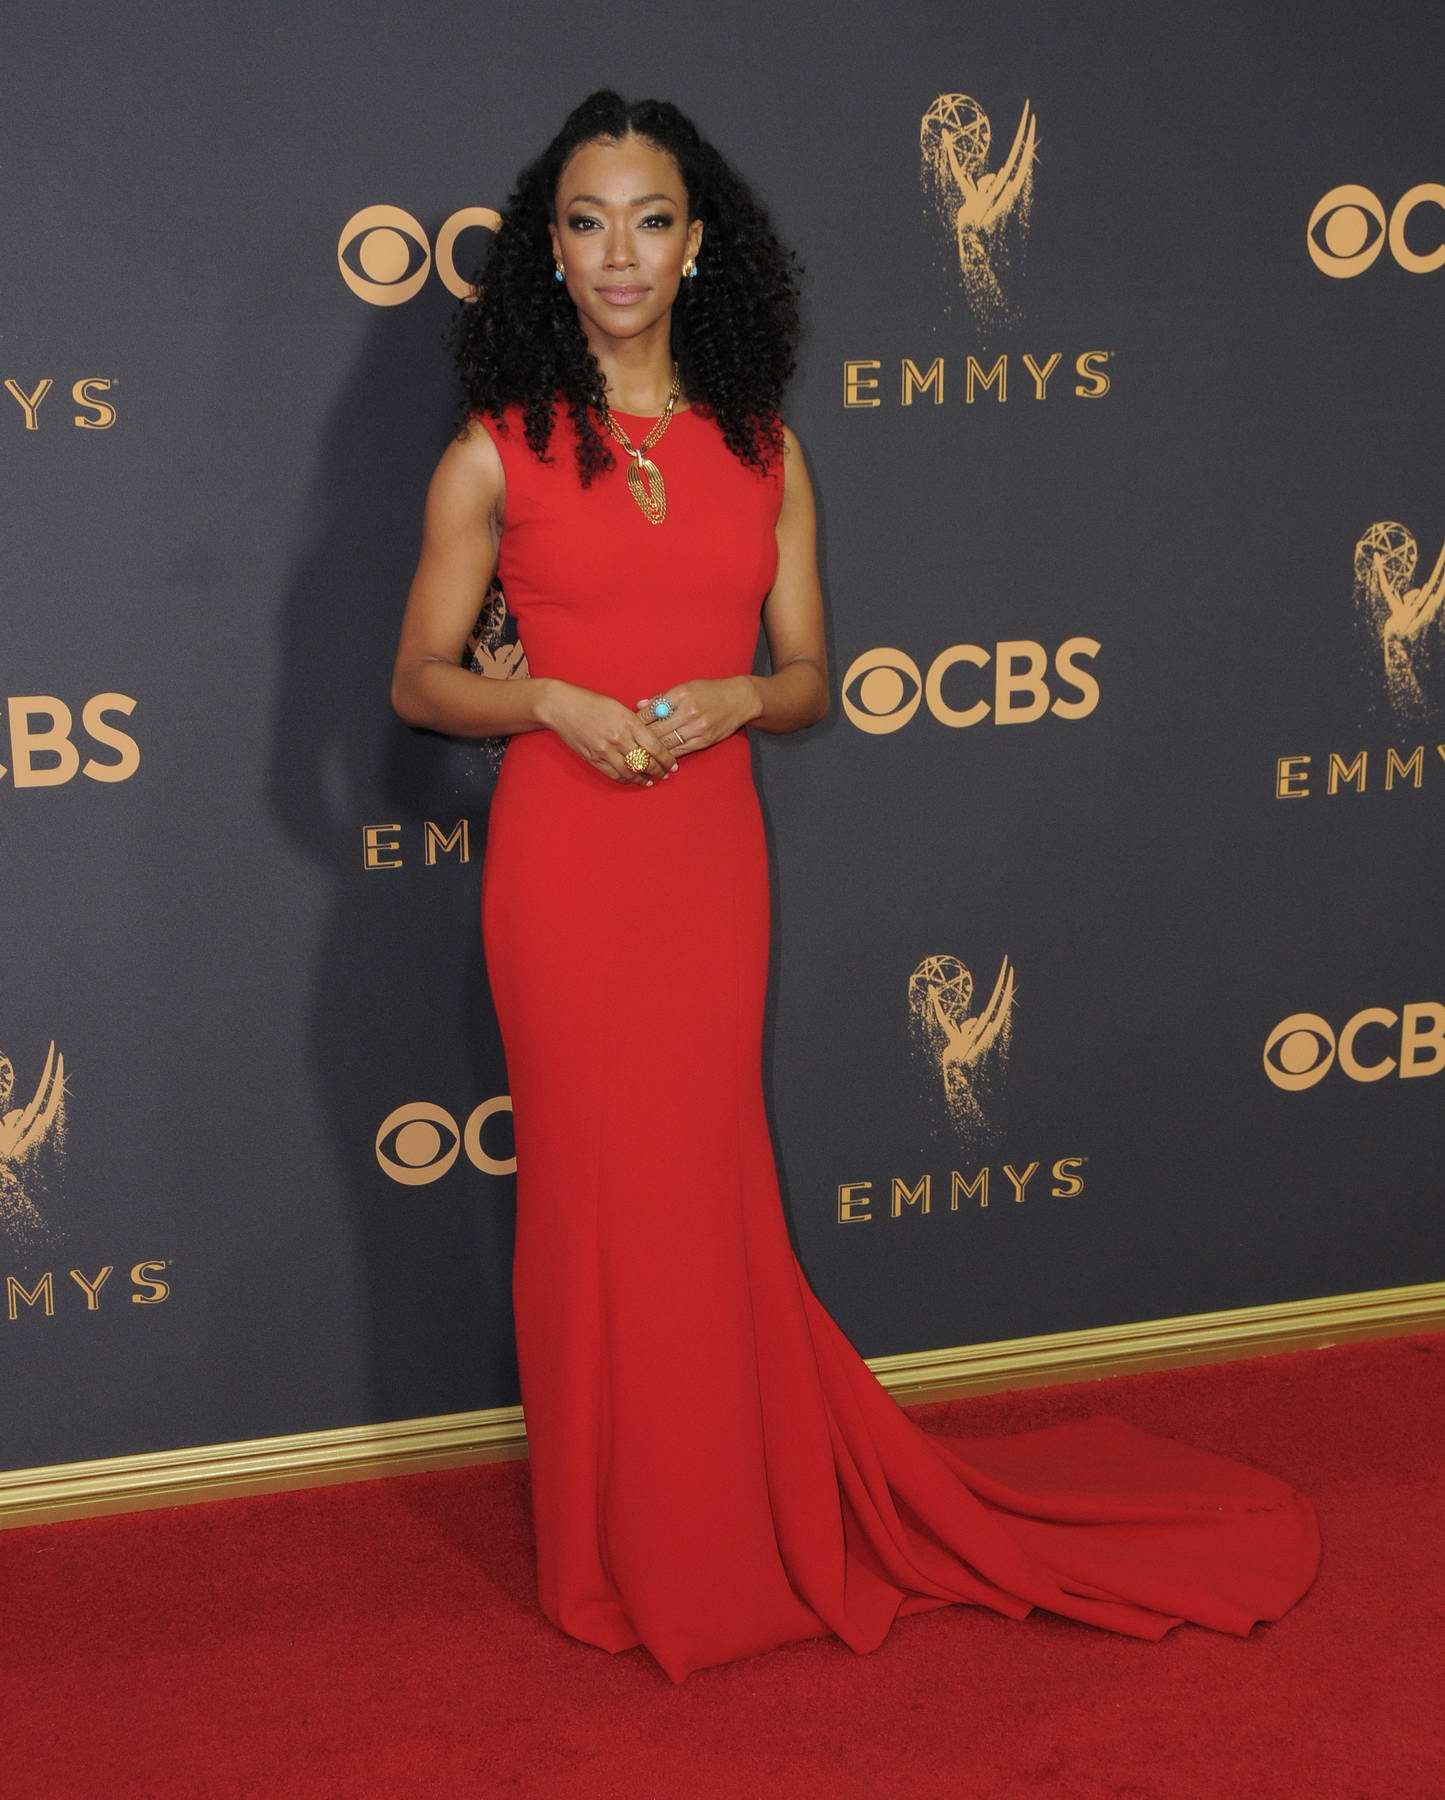 Sonequa Martin-Green at 69th Annual Primetime EMMY Awards held at Microsoft Theater in Los Angeles